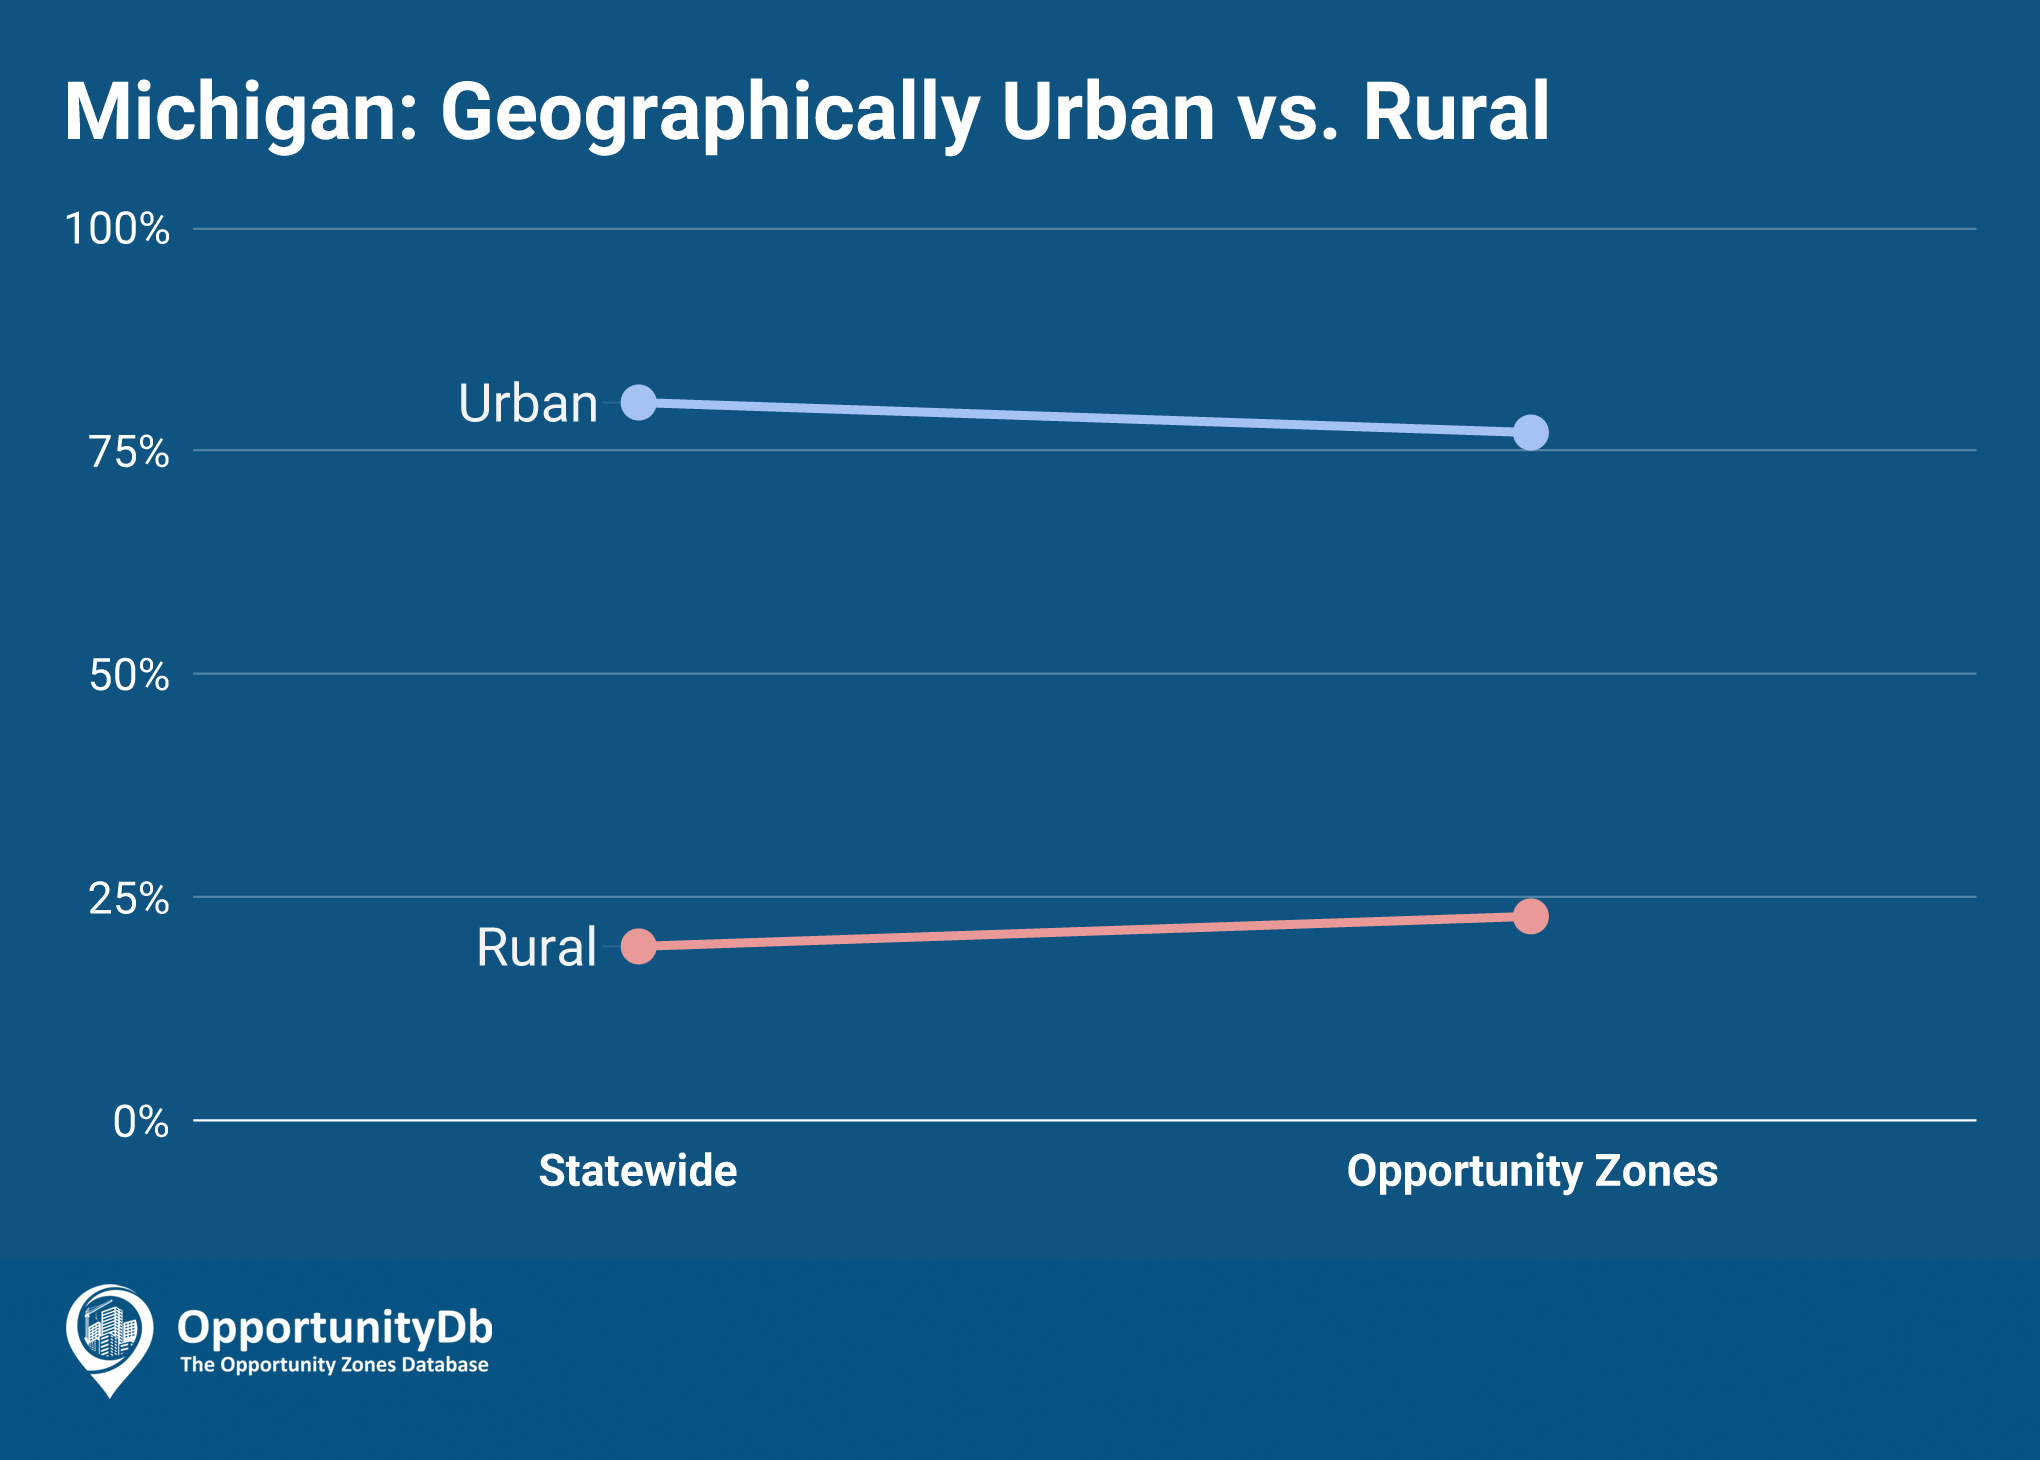 Urban vs. Rural in Michigan Opportunity Zones